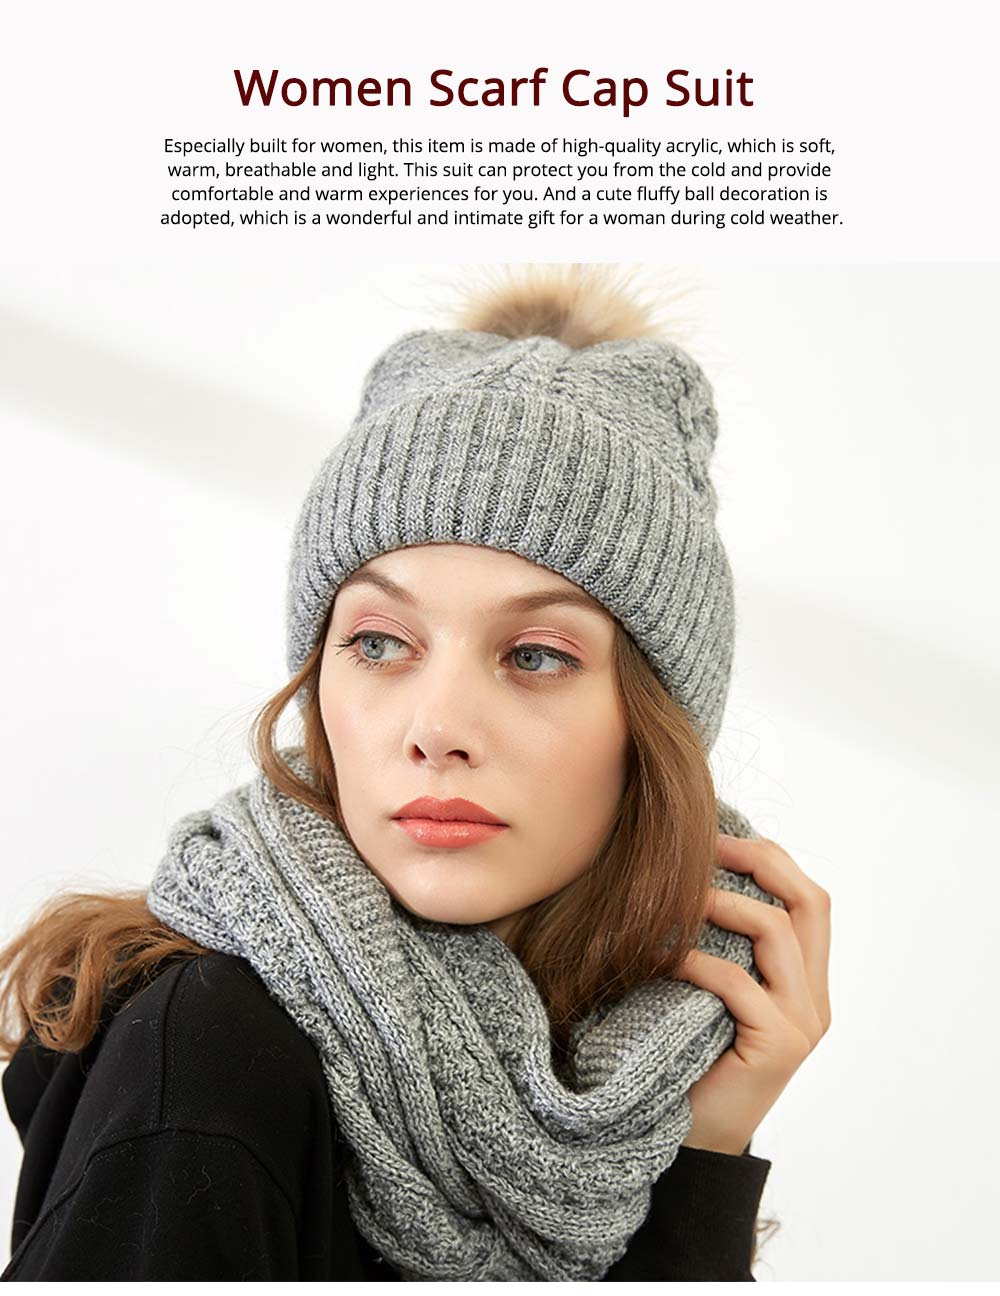 Thick Women Scarf Cap Suit, Warm Soft Acrylic Knitted Snood Face Neck Warmer Cravat Beanies 6